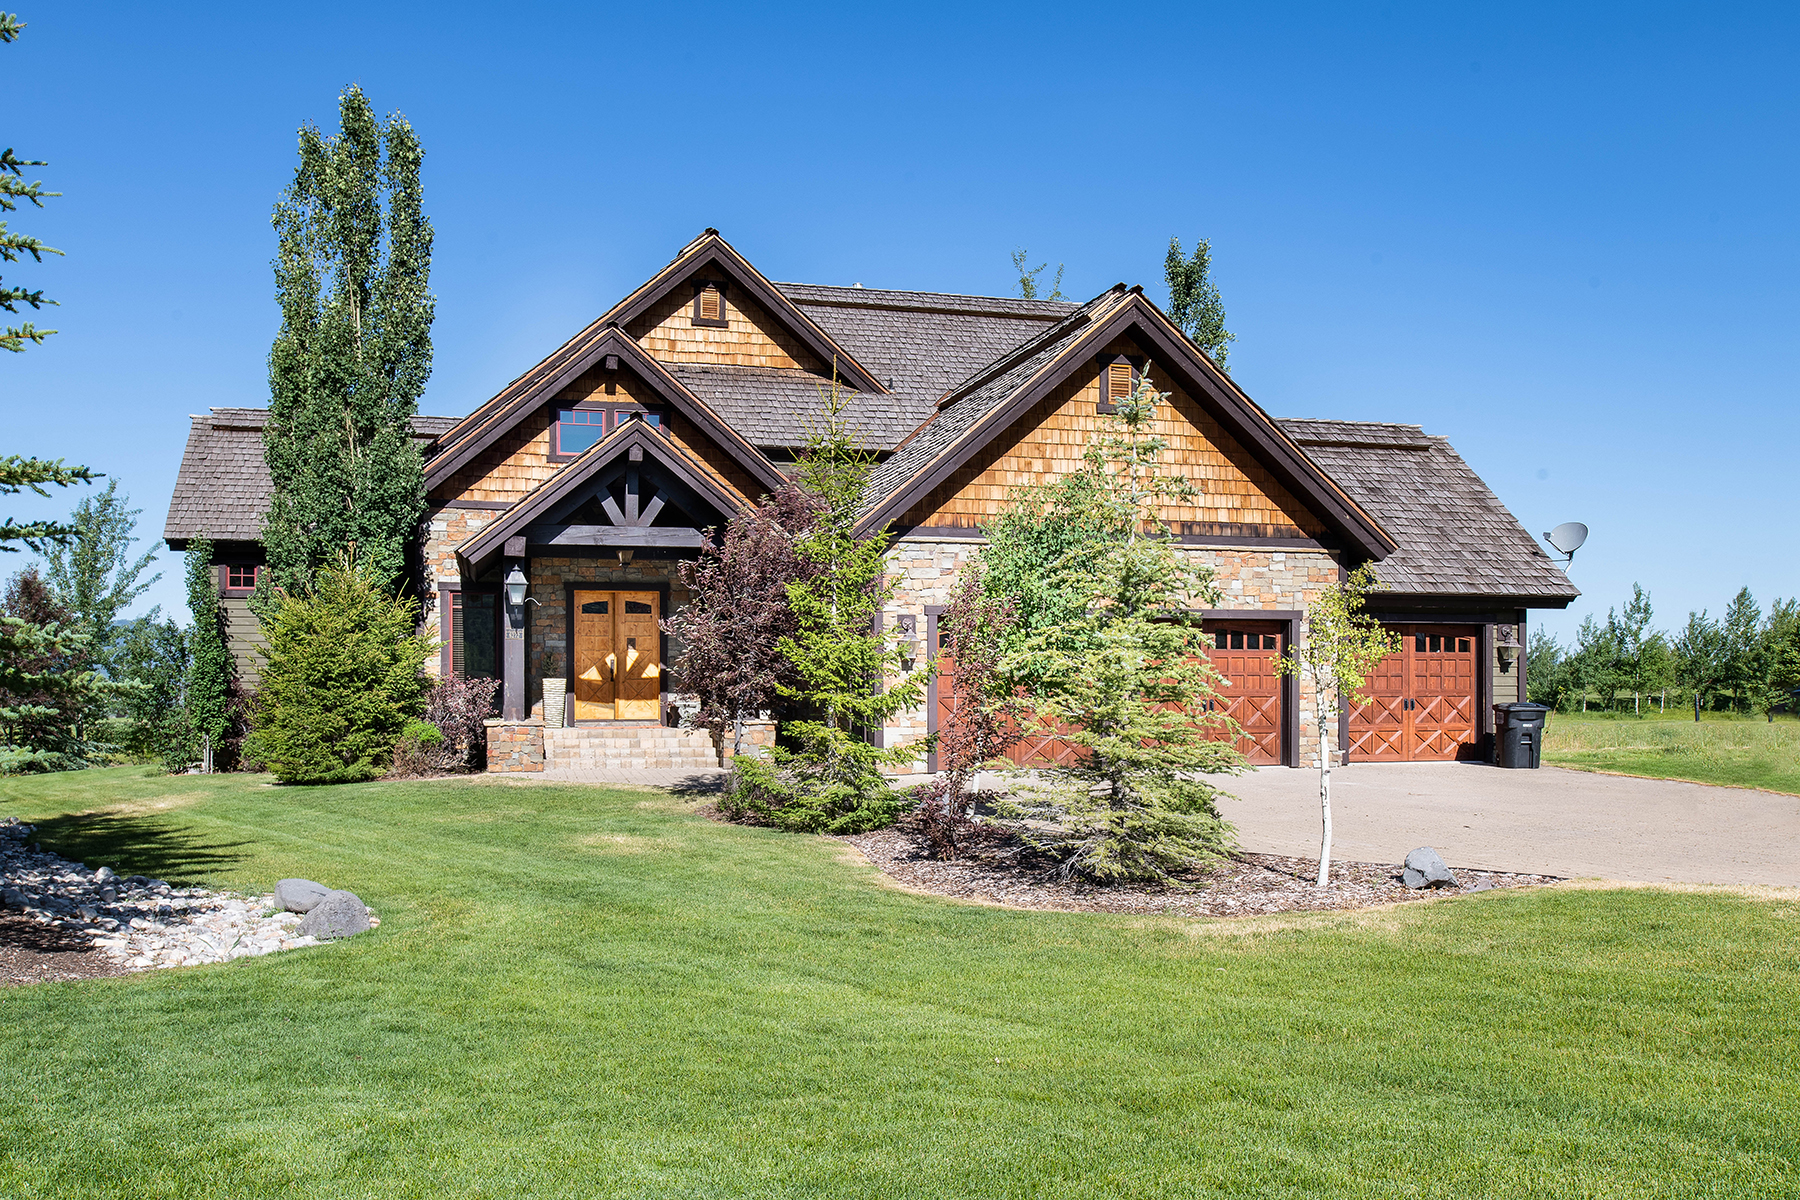 Single Family Homes for Sale at Mountain Living at Teton Reserve in Victor, ID 6272 Peregrine Victor, Idaho 83455 United States